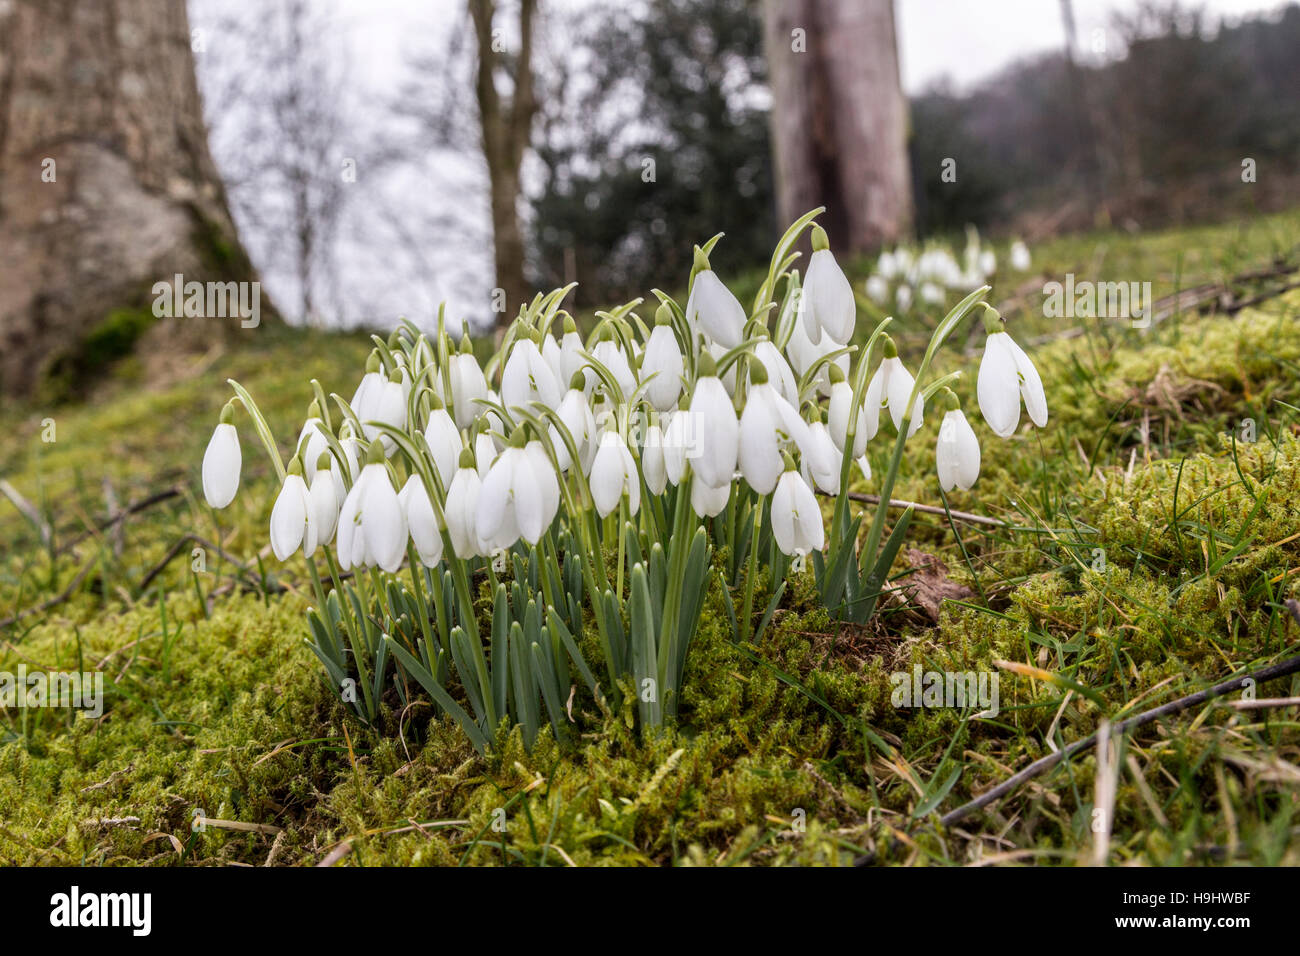 Snowdrops Galanthus nivalis in woodland, Wales, UK - Stock Image